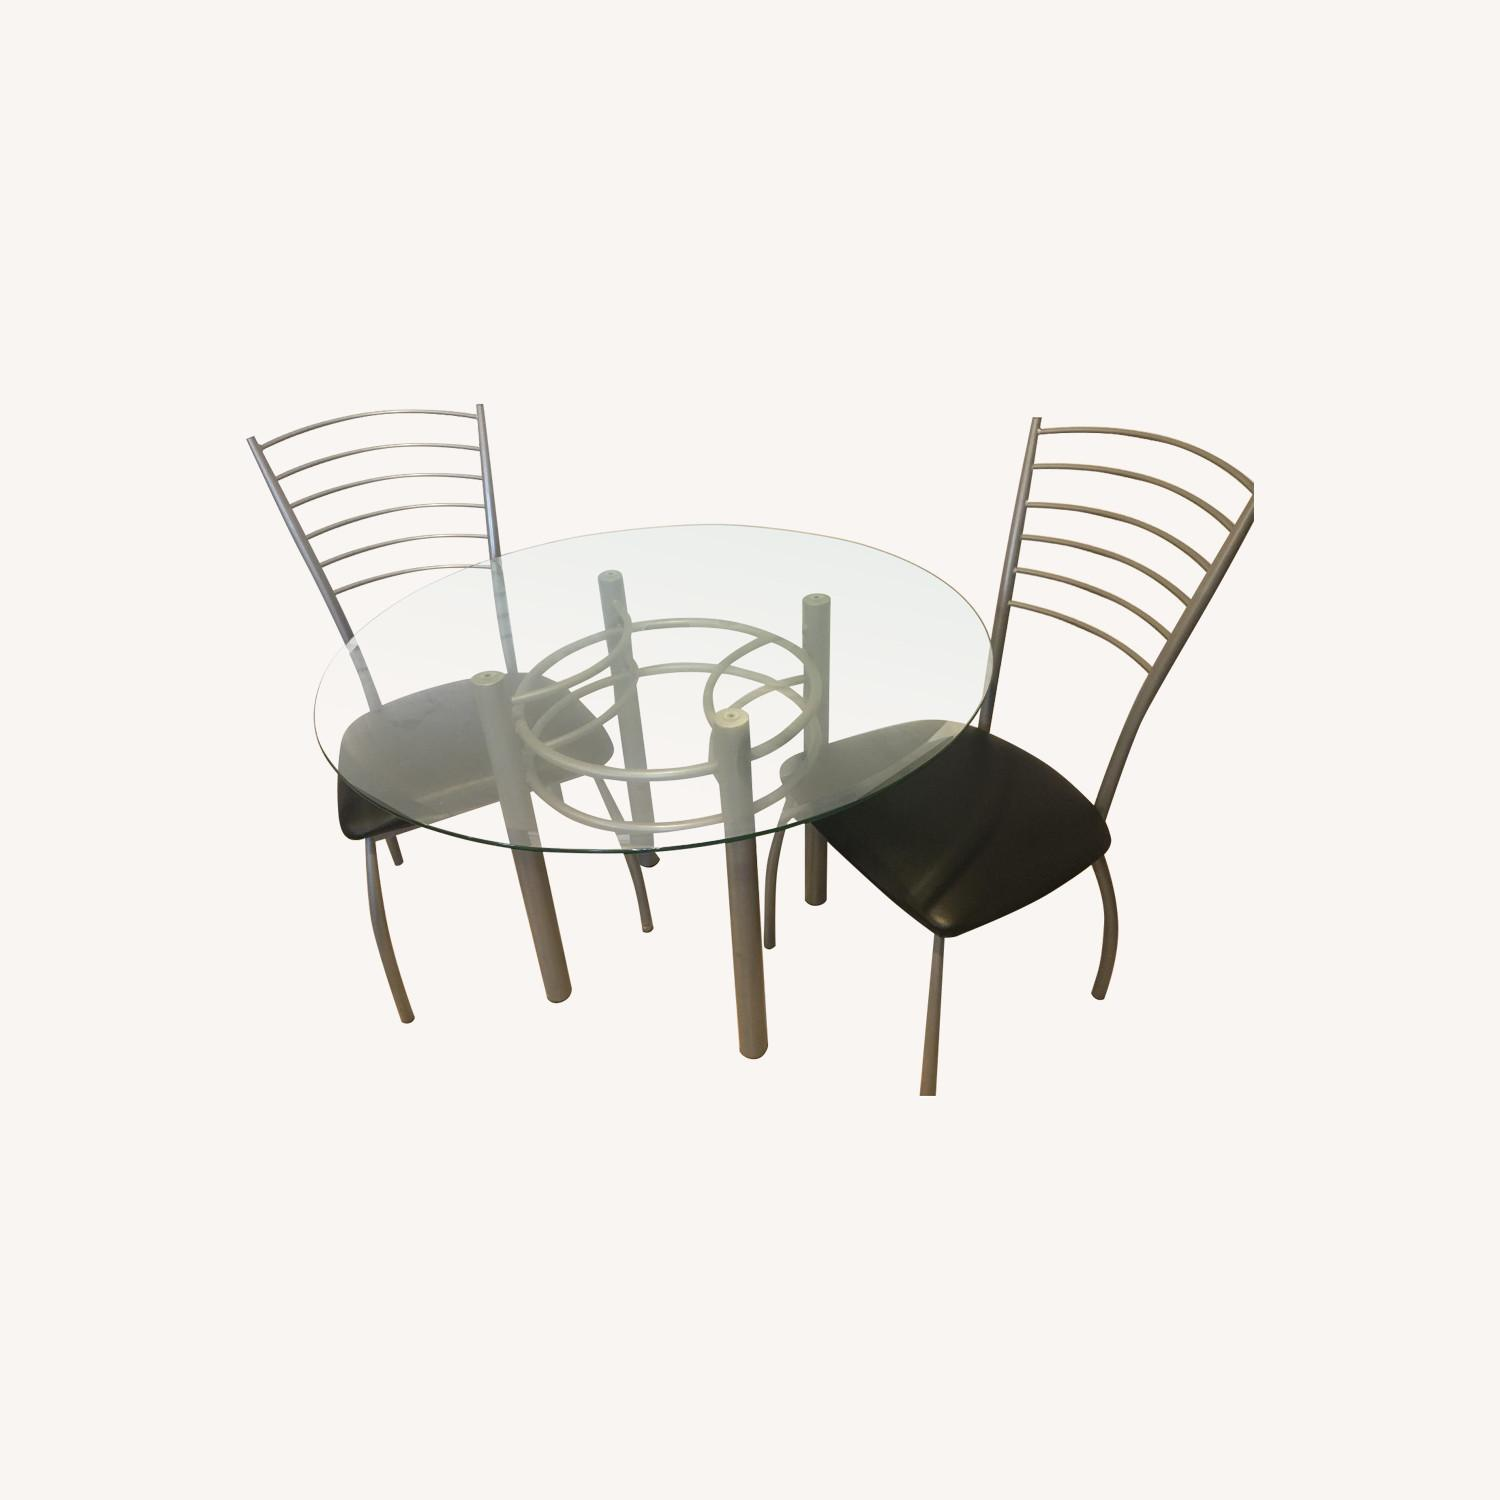 Amisco Glass Dining Table w/ 4 Chairs - image-0